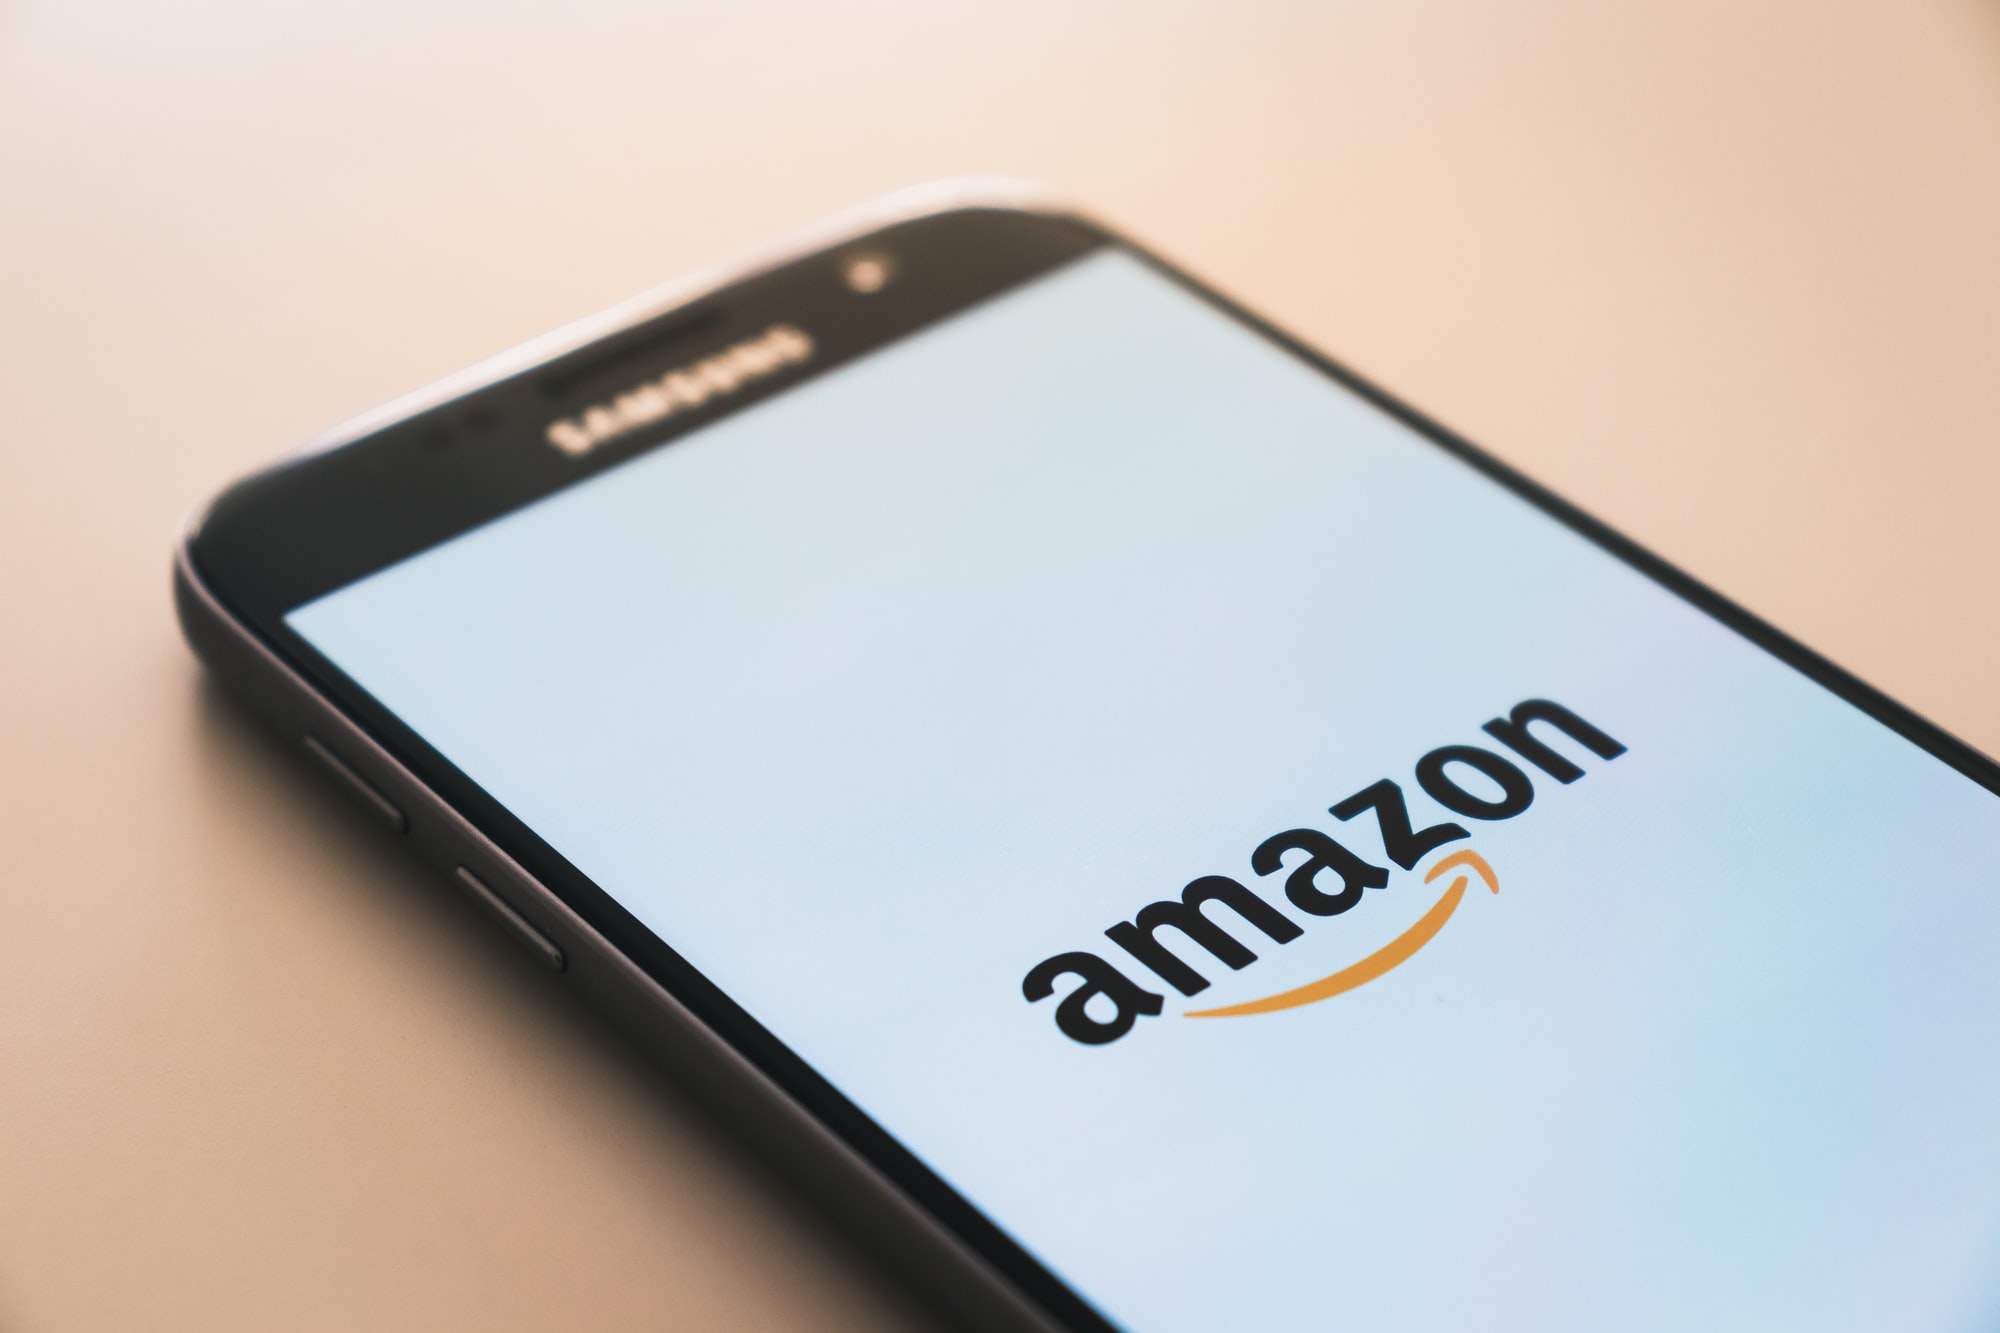 Amazon Academy to help students with JEE and competitive exams